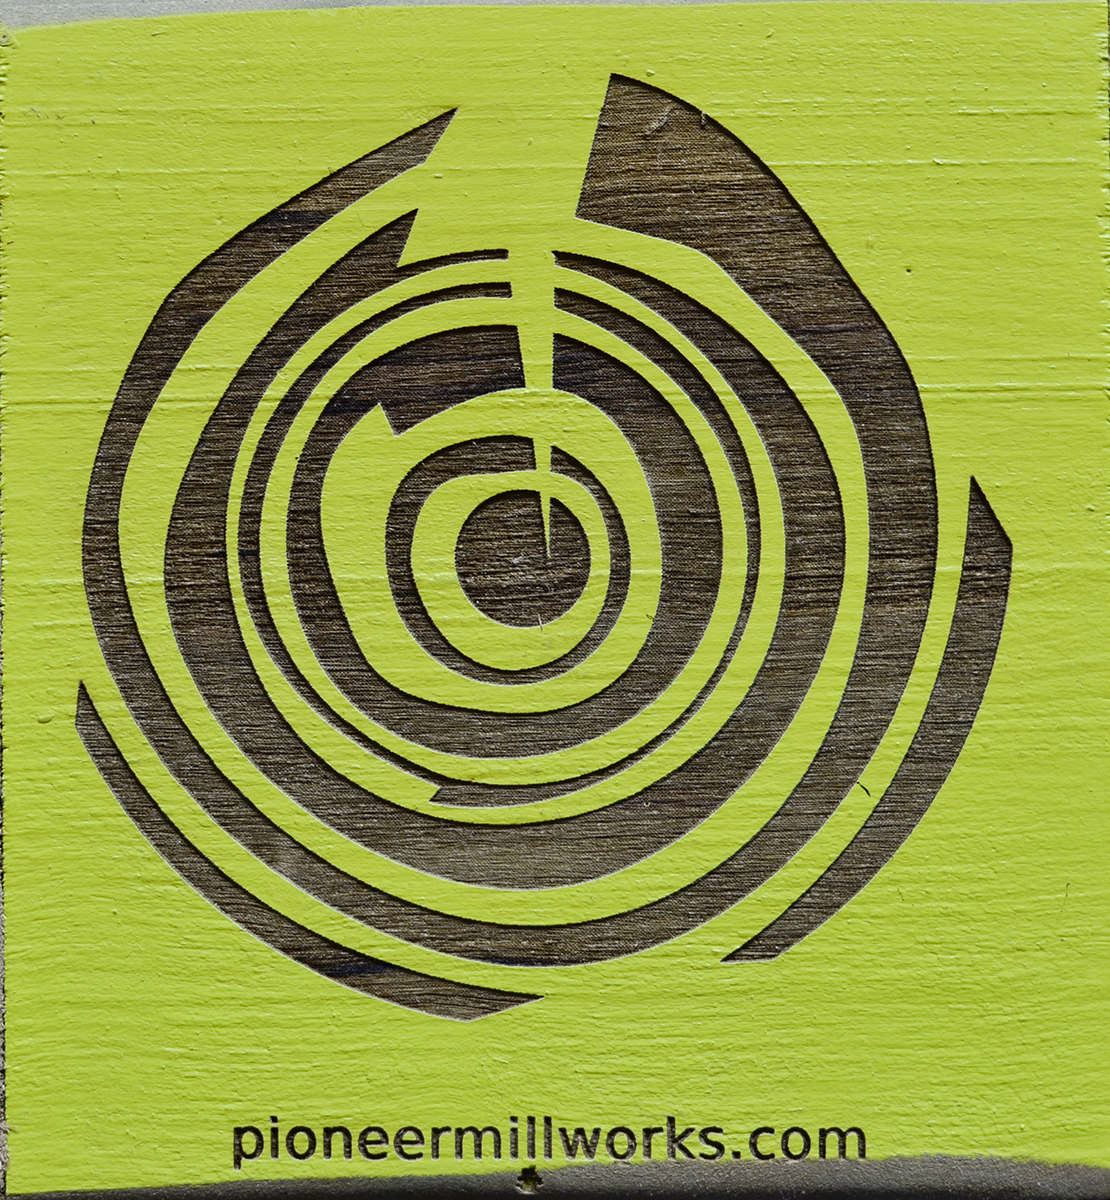 Pioneer Millworks Etching on Reclaimed Wood with Custom Green Paint